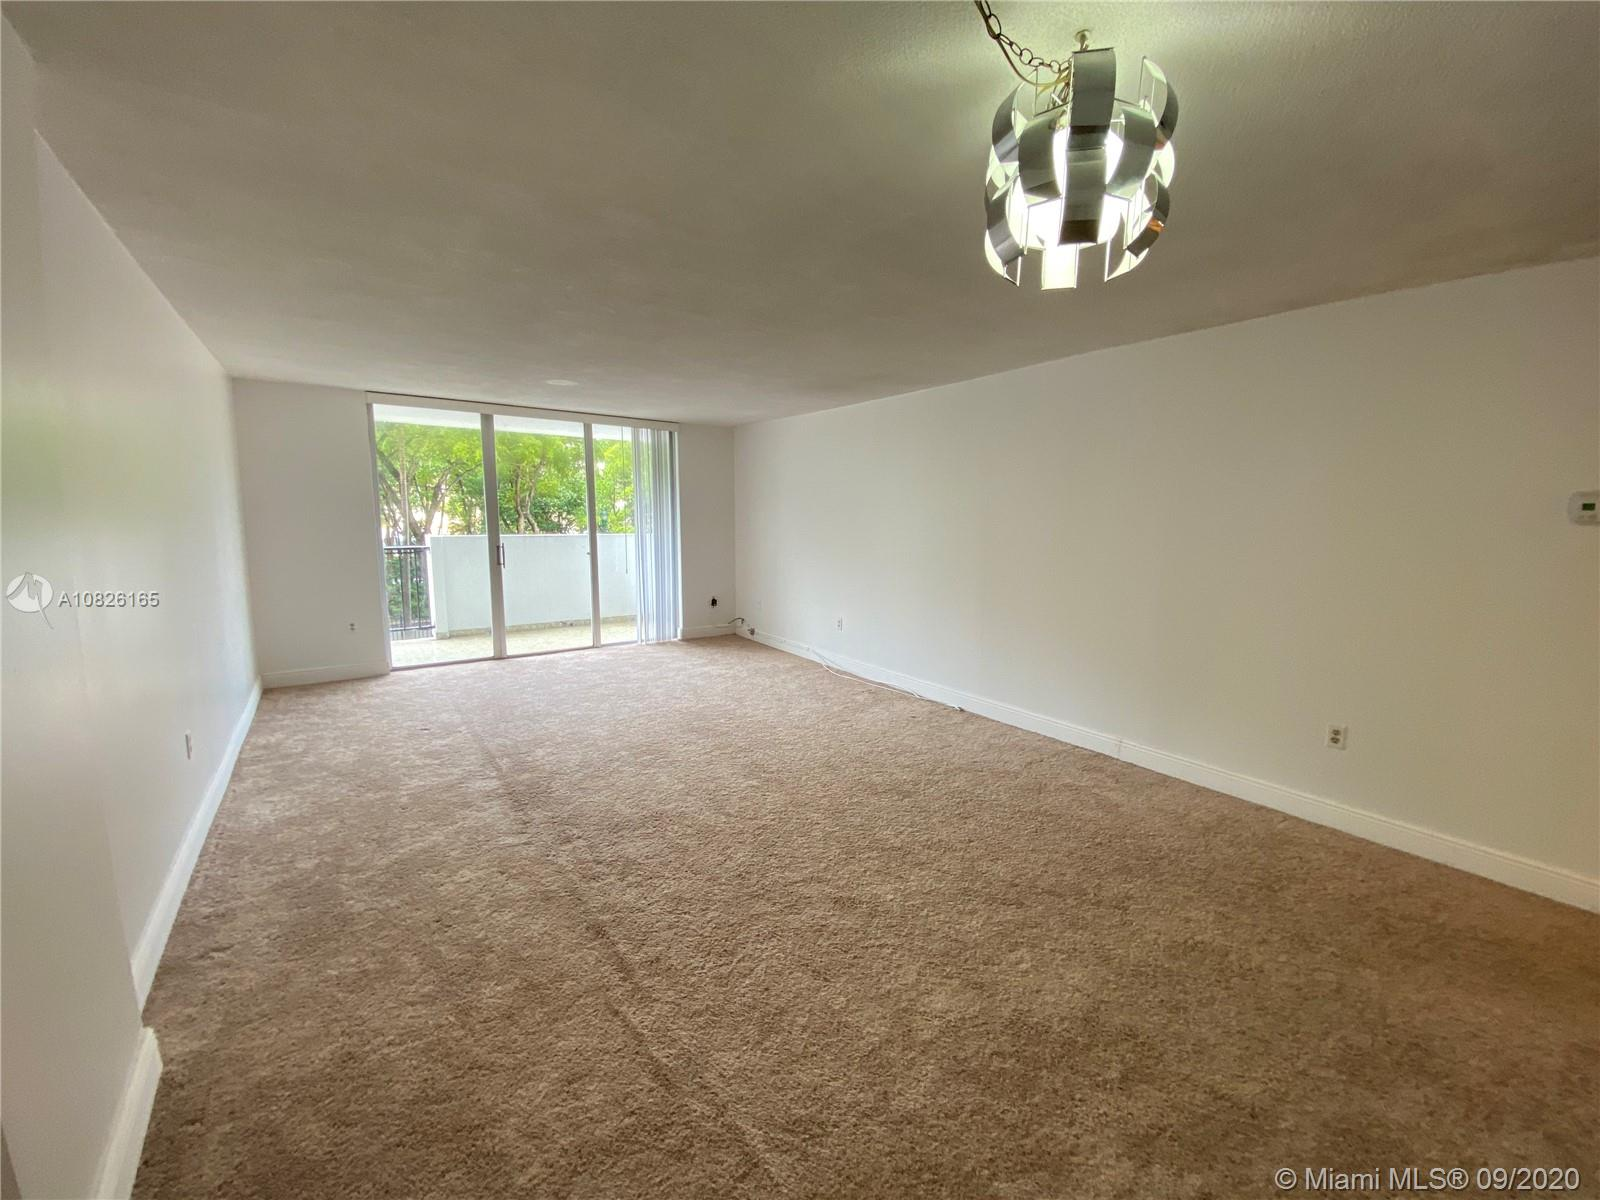 2780 NE 183rd St #215 For Sale A10826165, FL